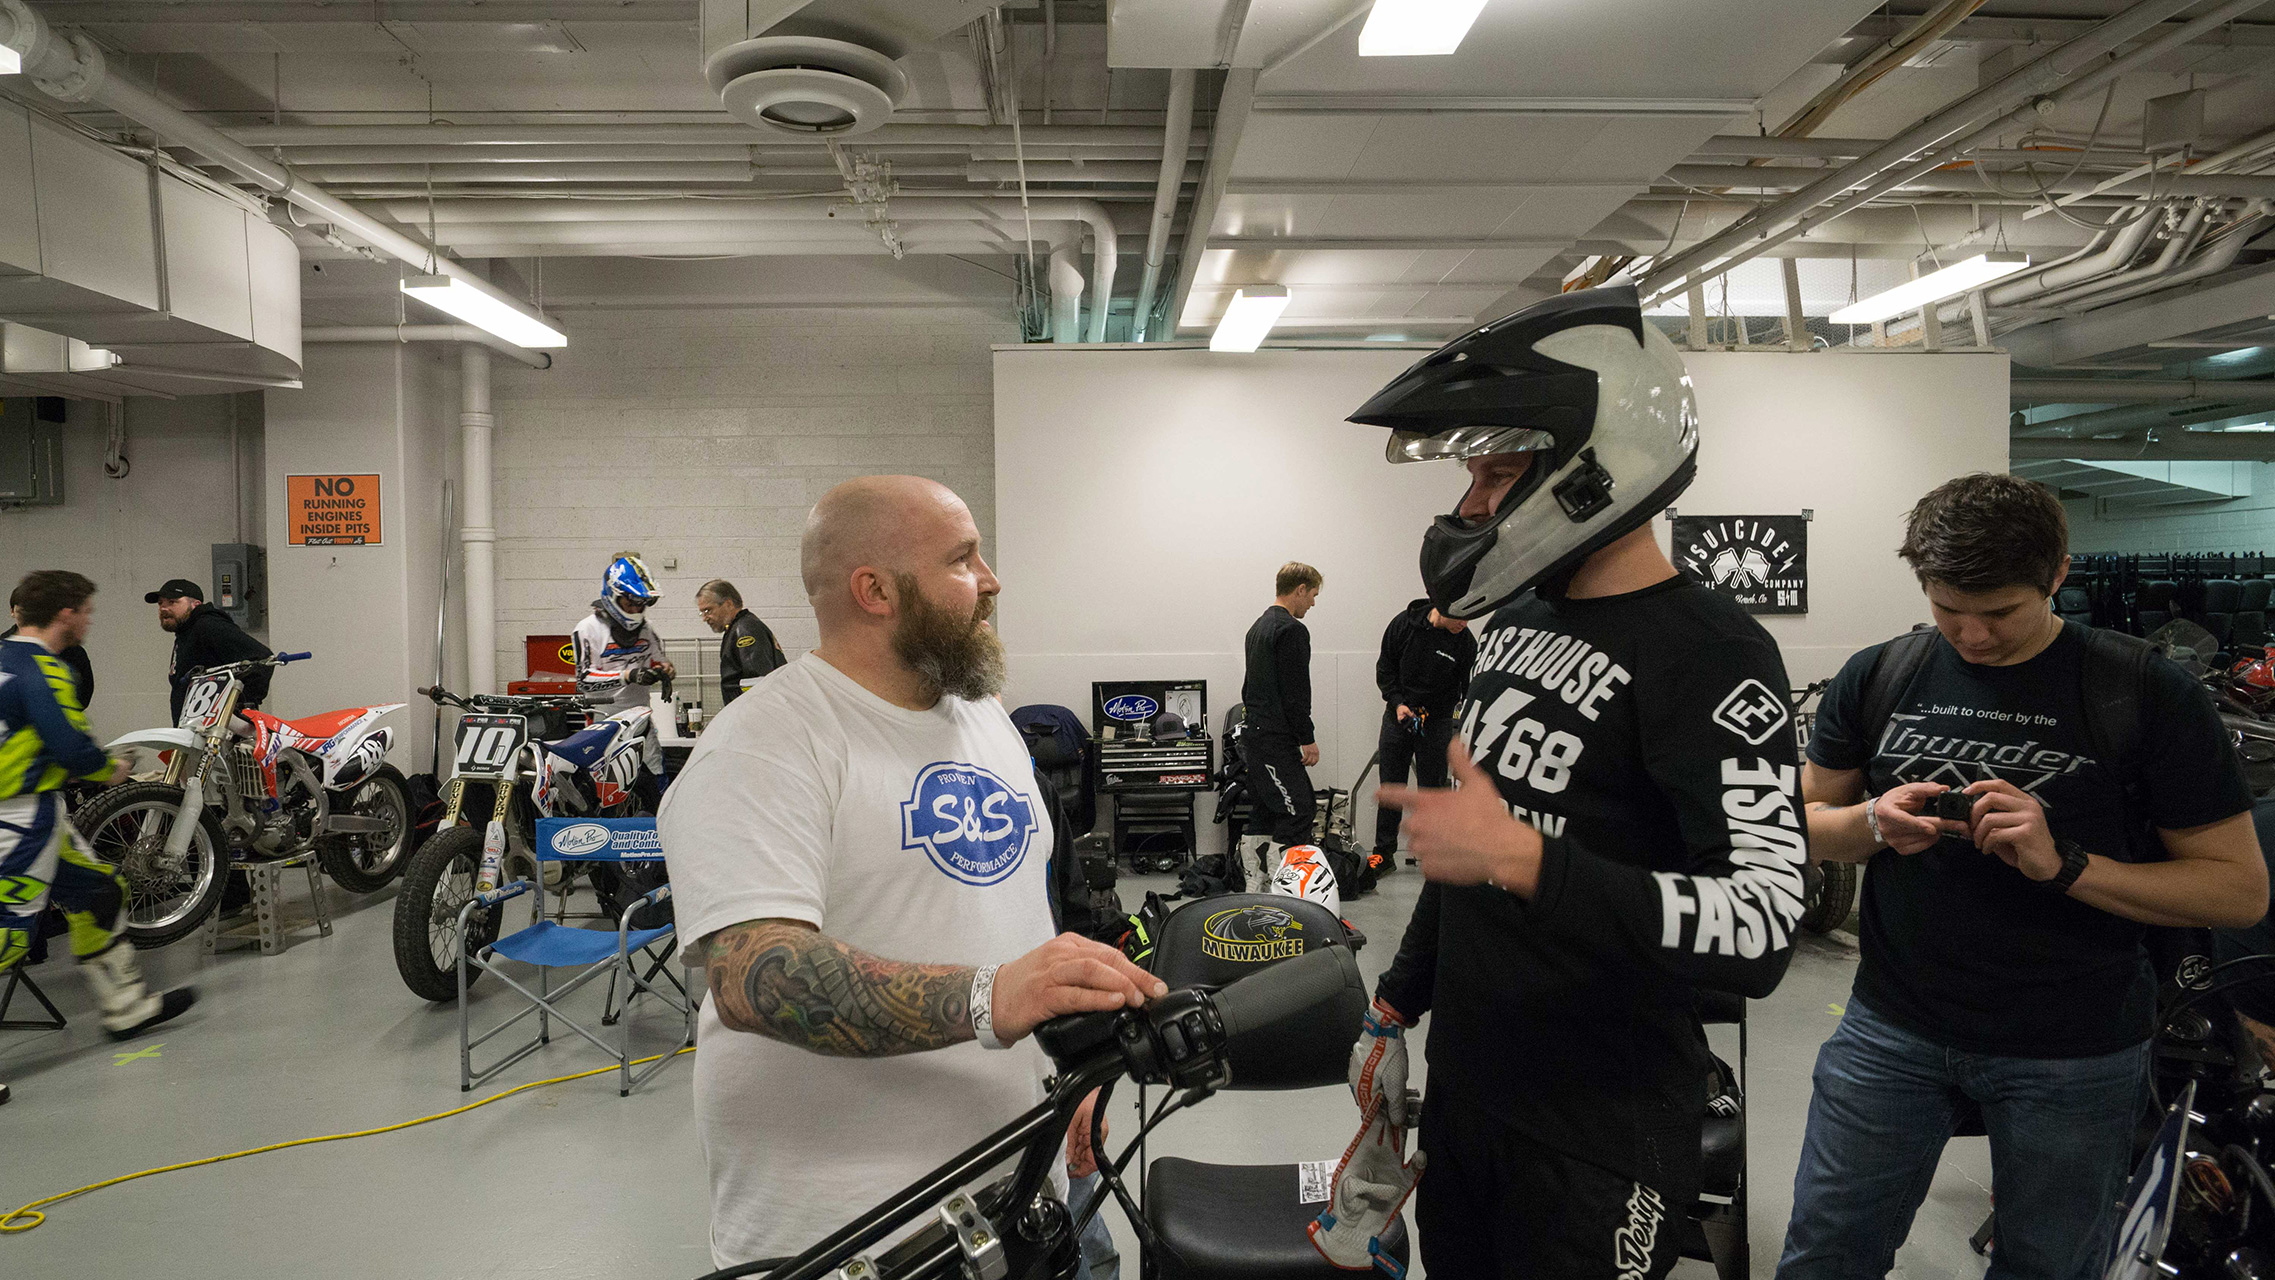 Hooligan Racing on S&S Cycle's H-D Sportsters | Cycle World